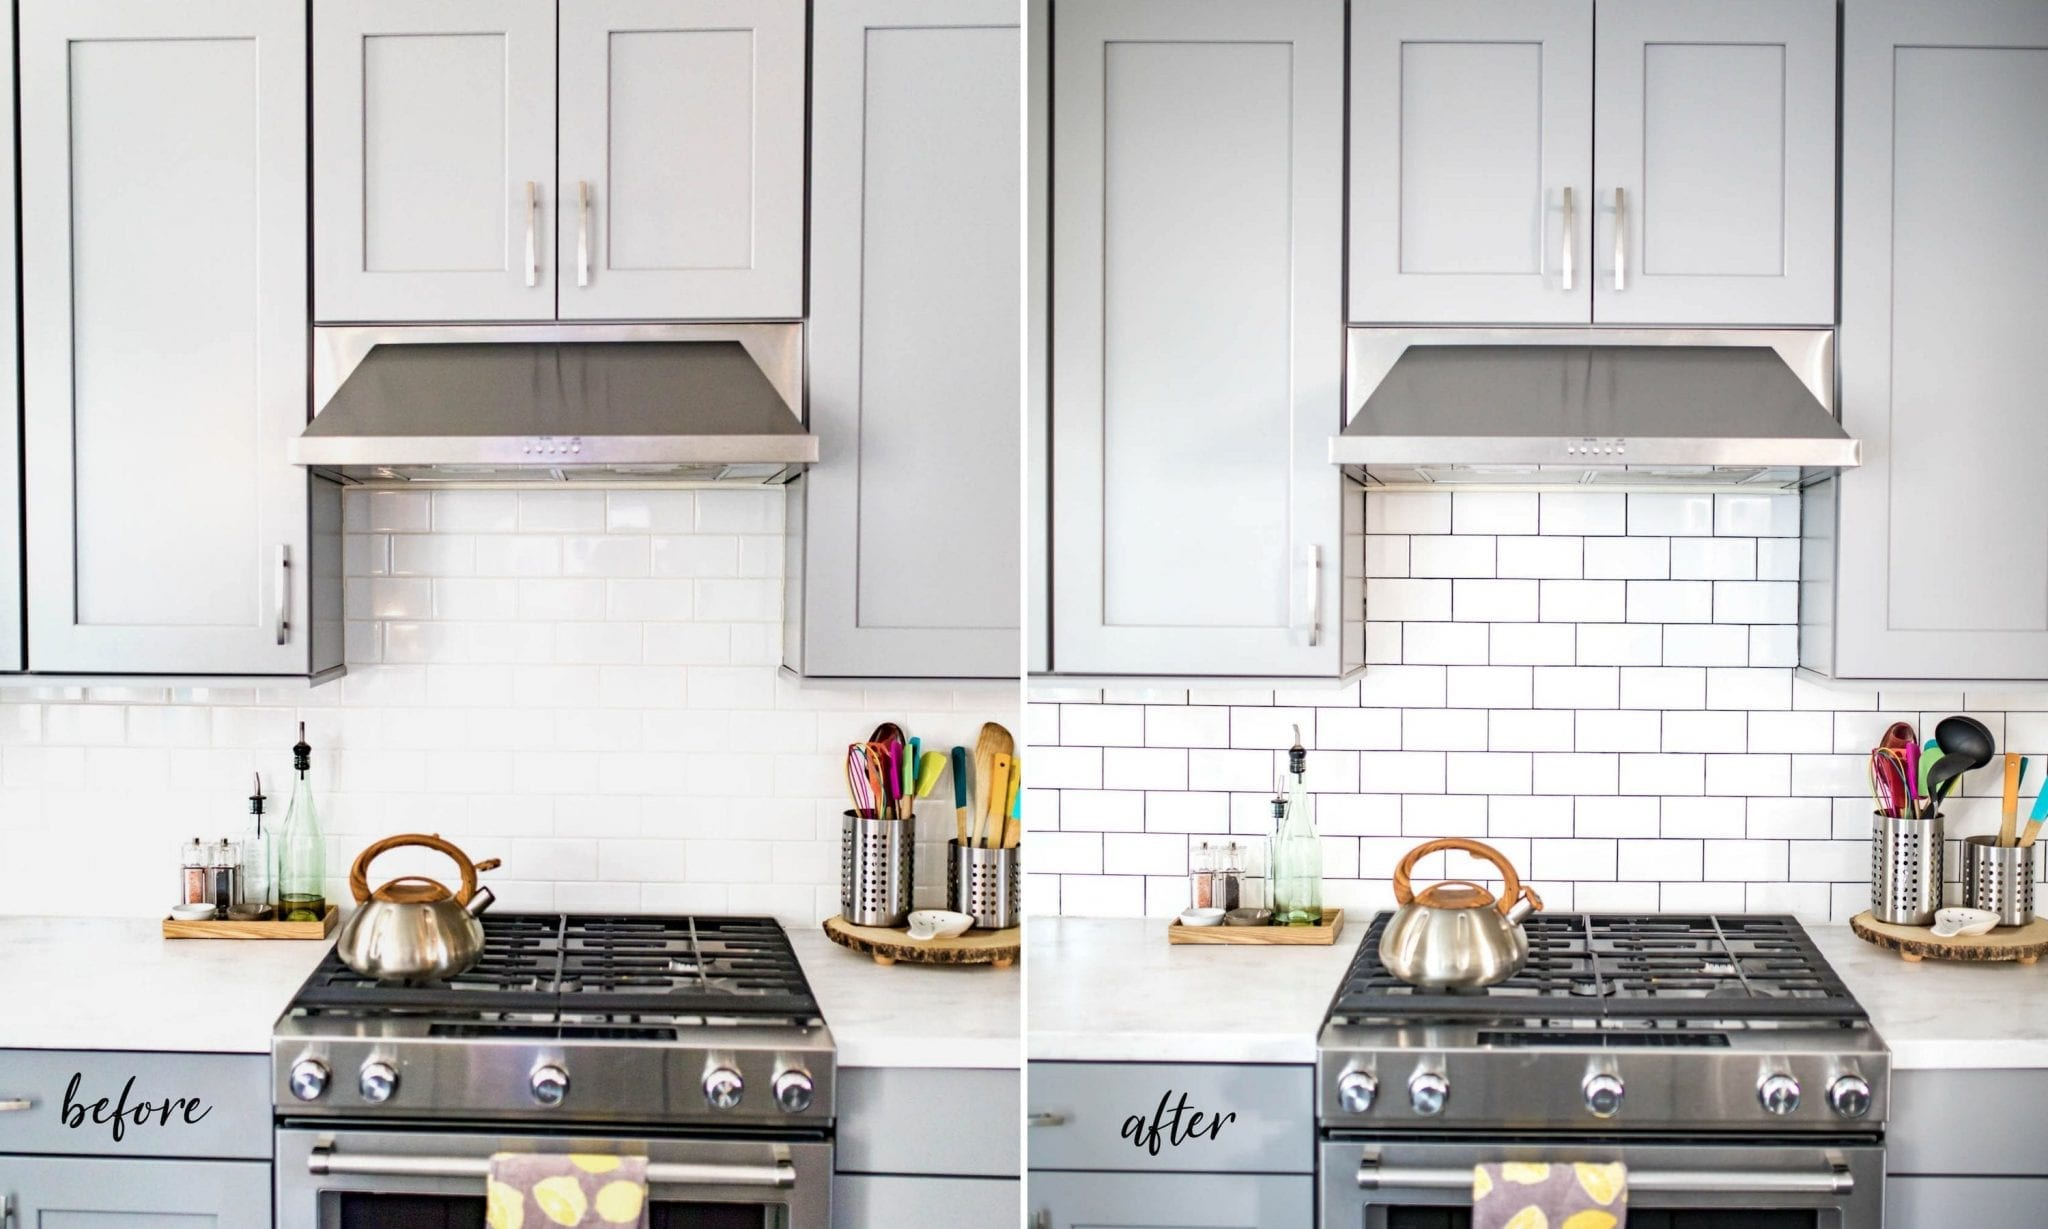 Backsplash Tile Refresh How To Make White Tile Pop For Under 20 Never Skip Brunch